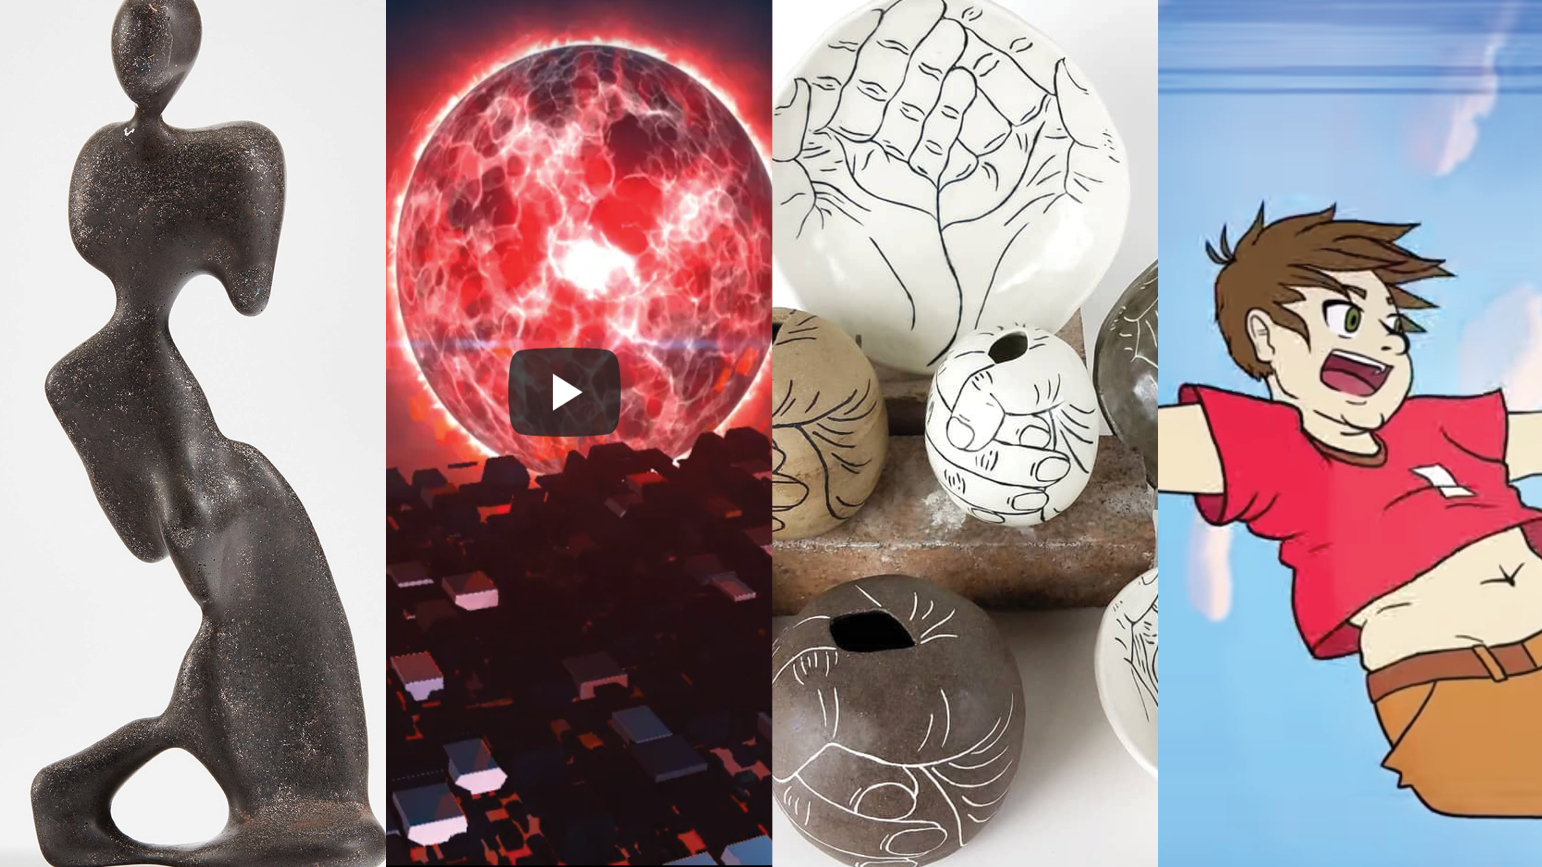 Four images: 1: image of an abstract sculpture of a human form; 2: still from music video showing big red sun; 3: images of ceramics items with hand decoration; still from video showing a falling anime character